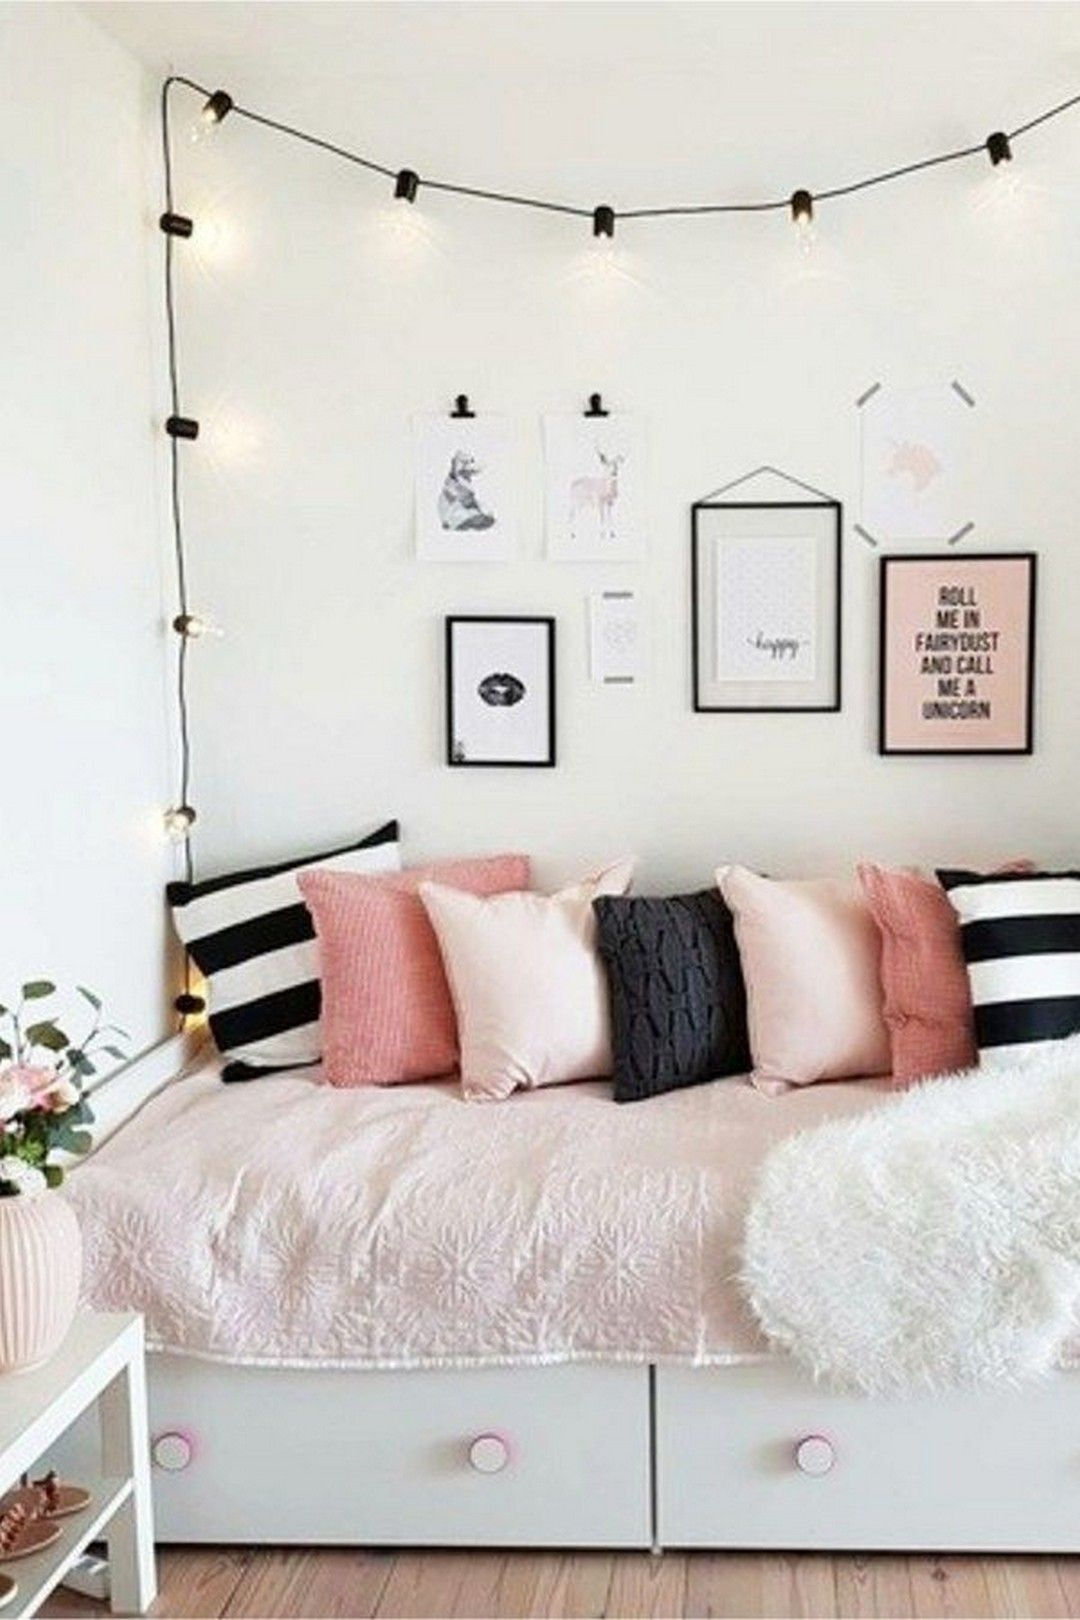 23 How To Decorate Organize And Add Style To A Small Bedroom Cute Bedroom Ideas Small Room Bedroom Small Bedroom Storage